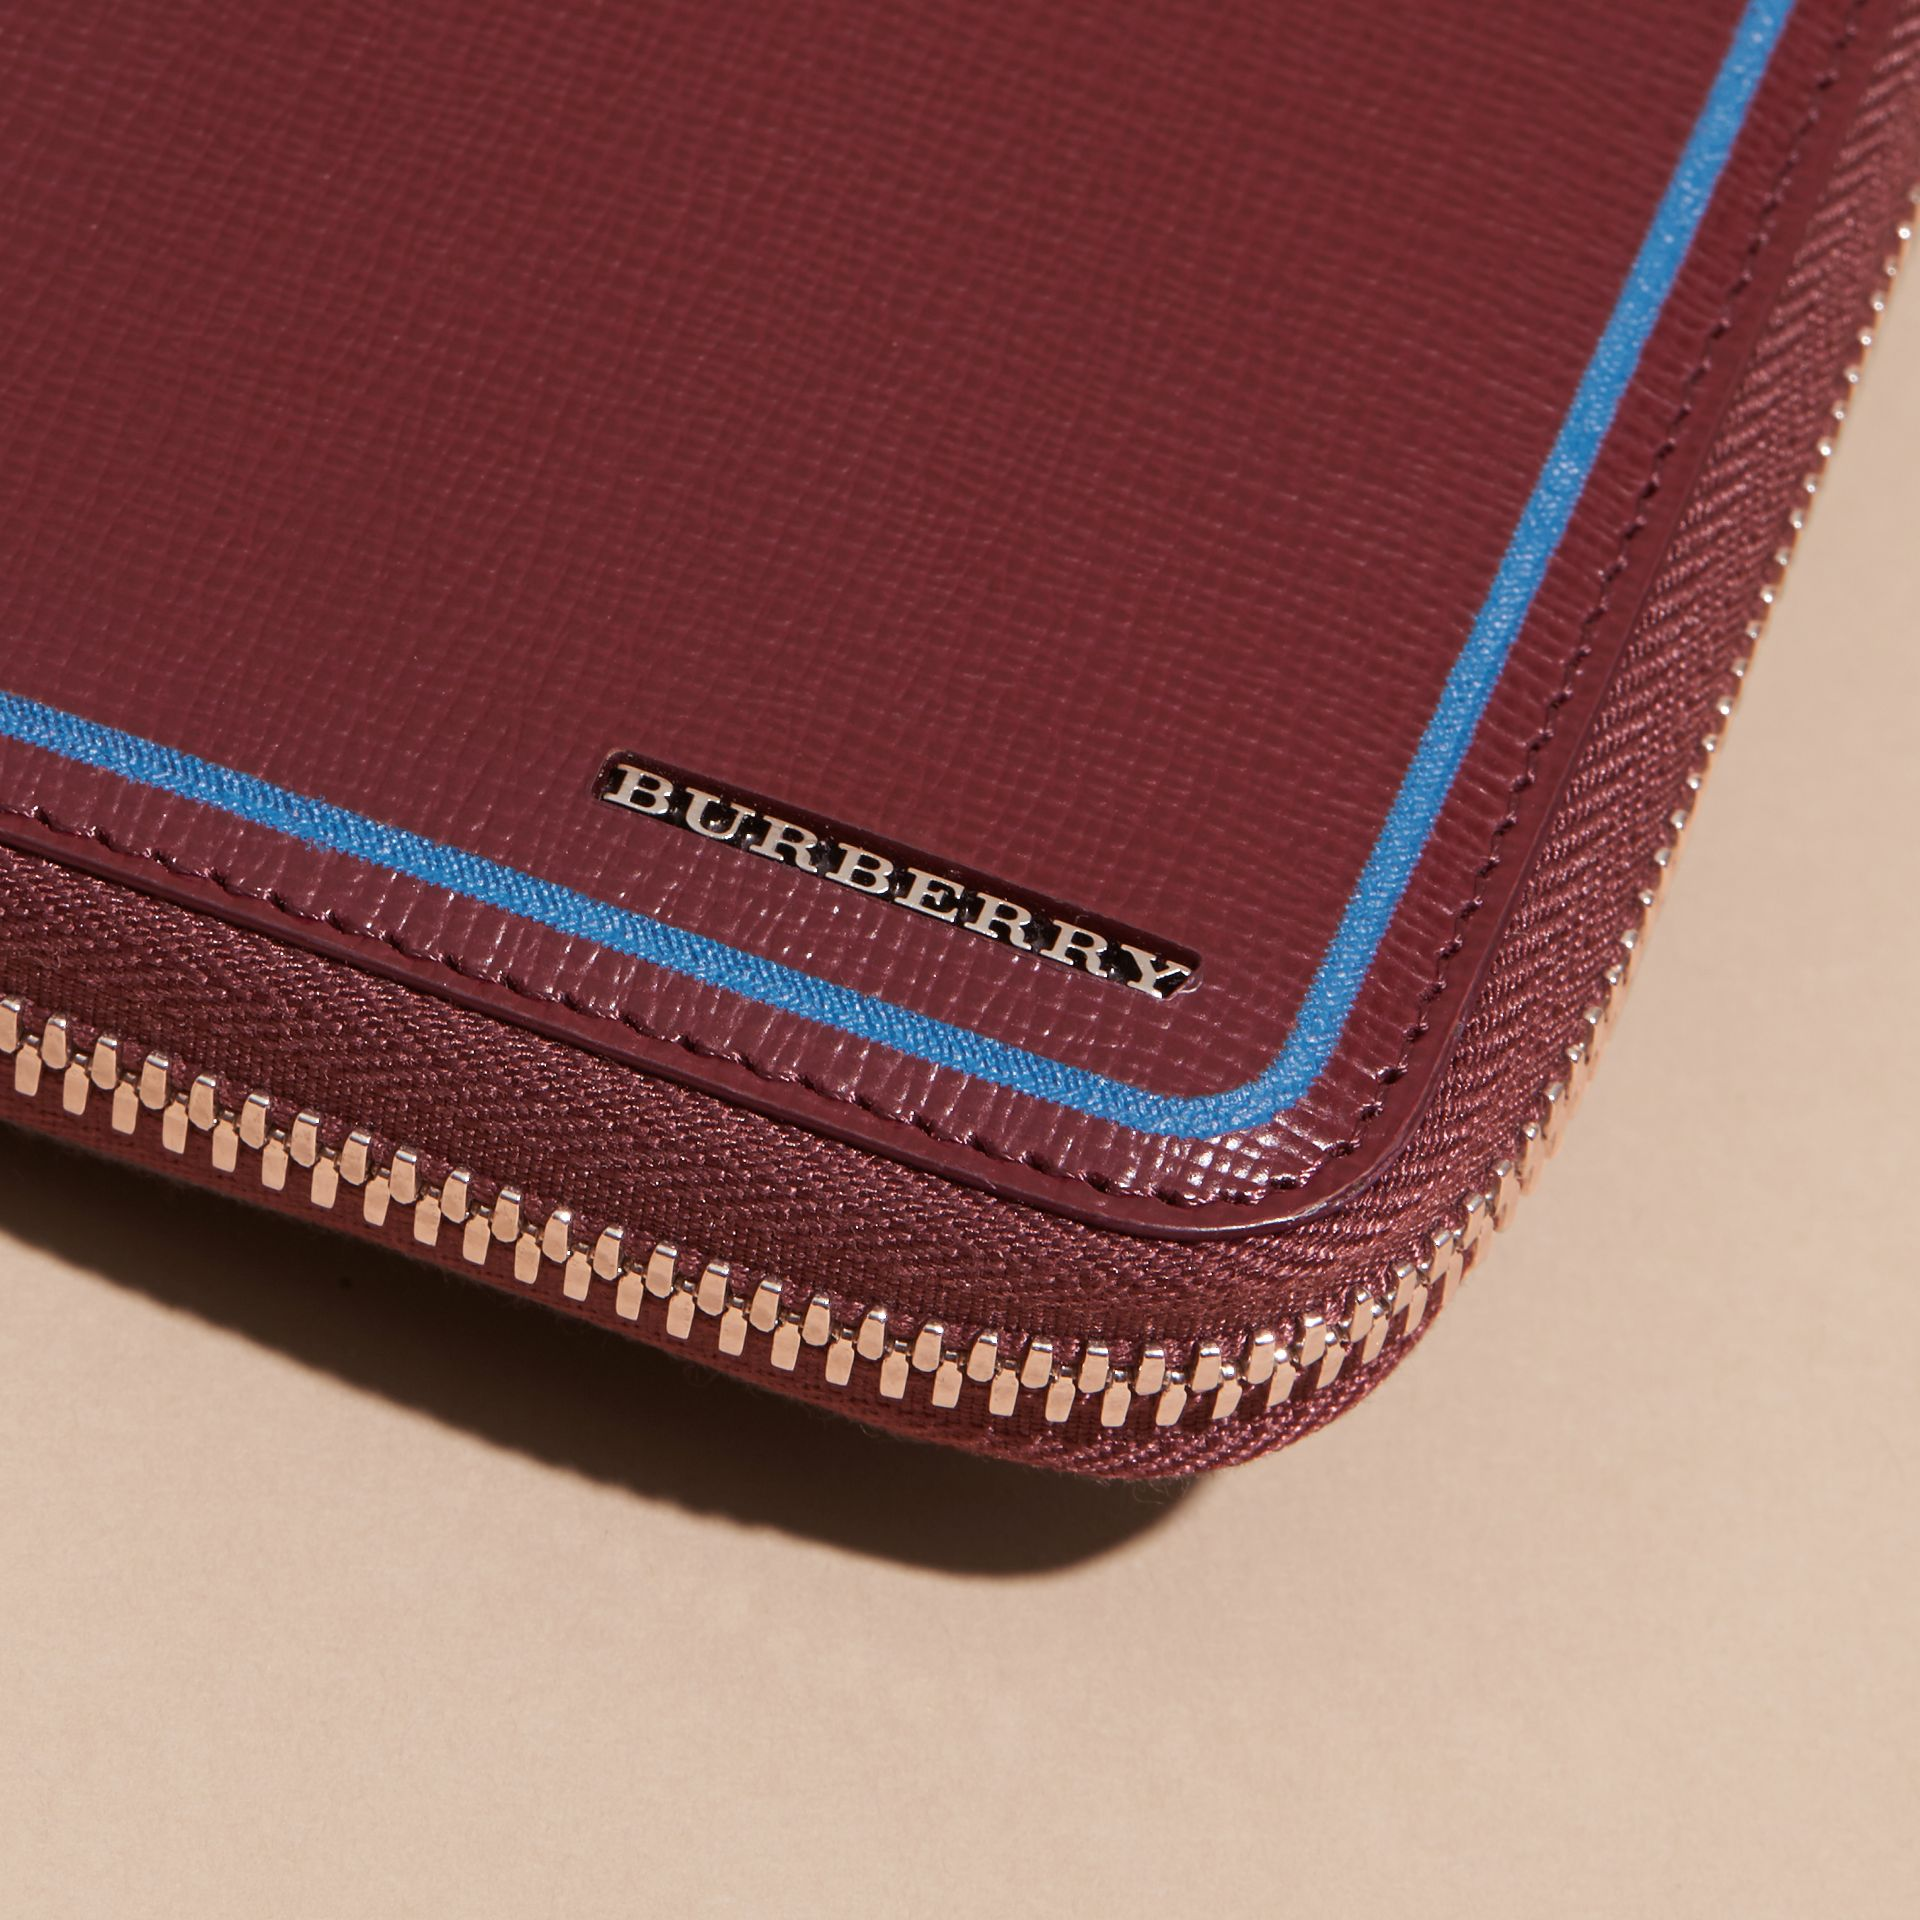 Border Detail London Leather Ziparound Wallet Burgundy Red - gallery image 3